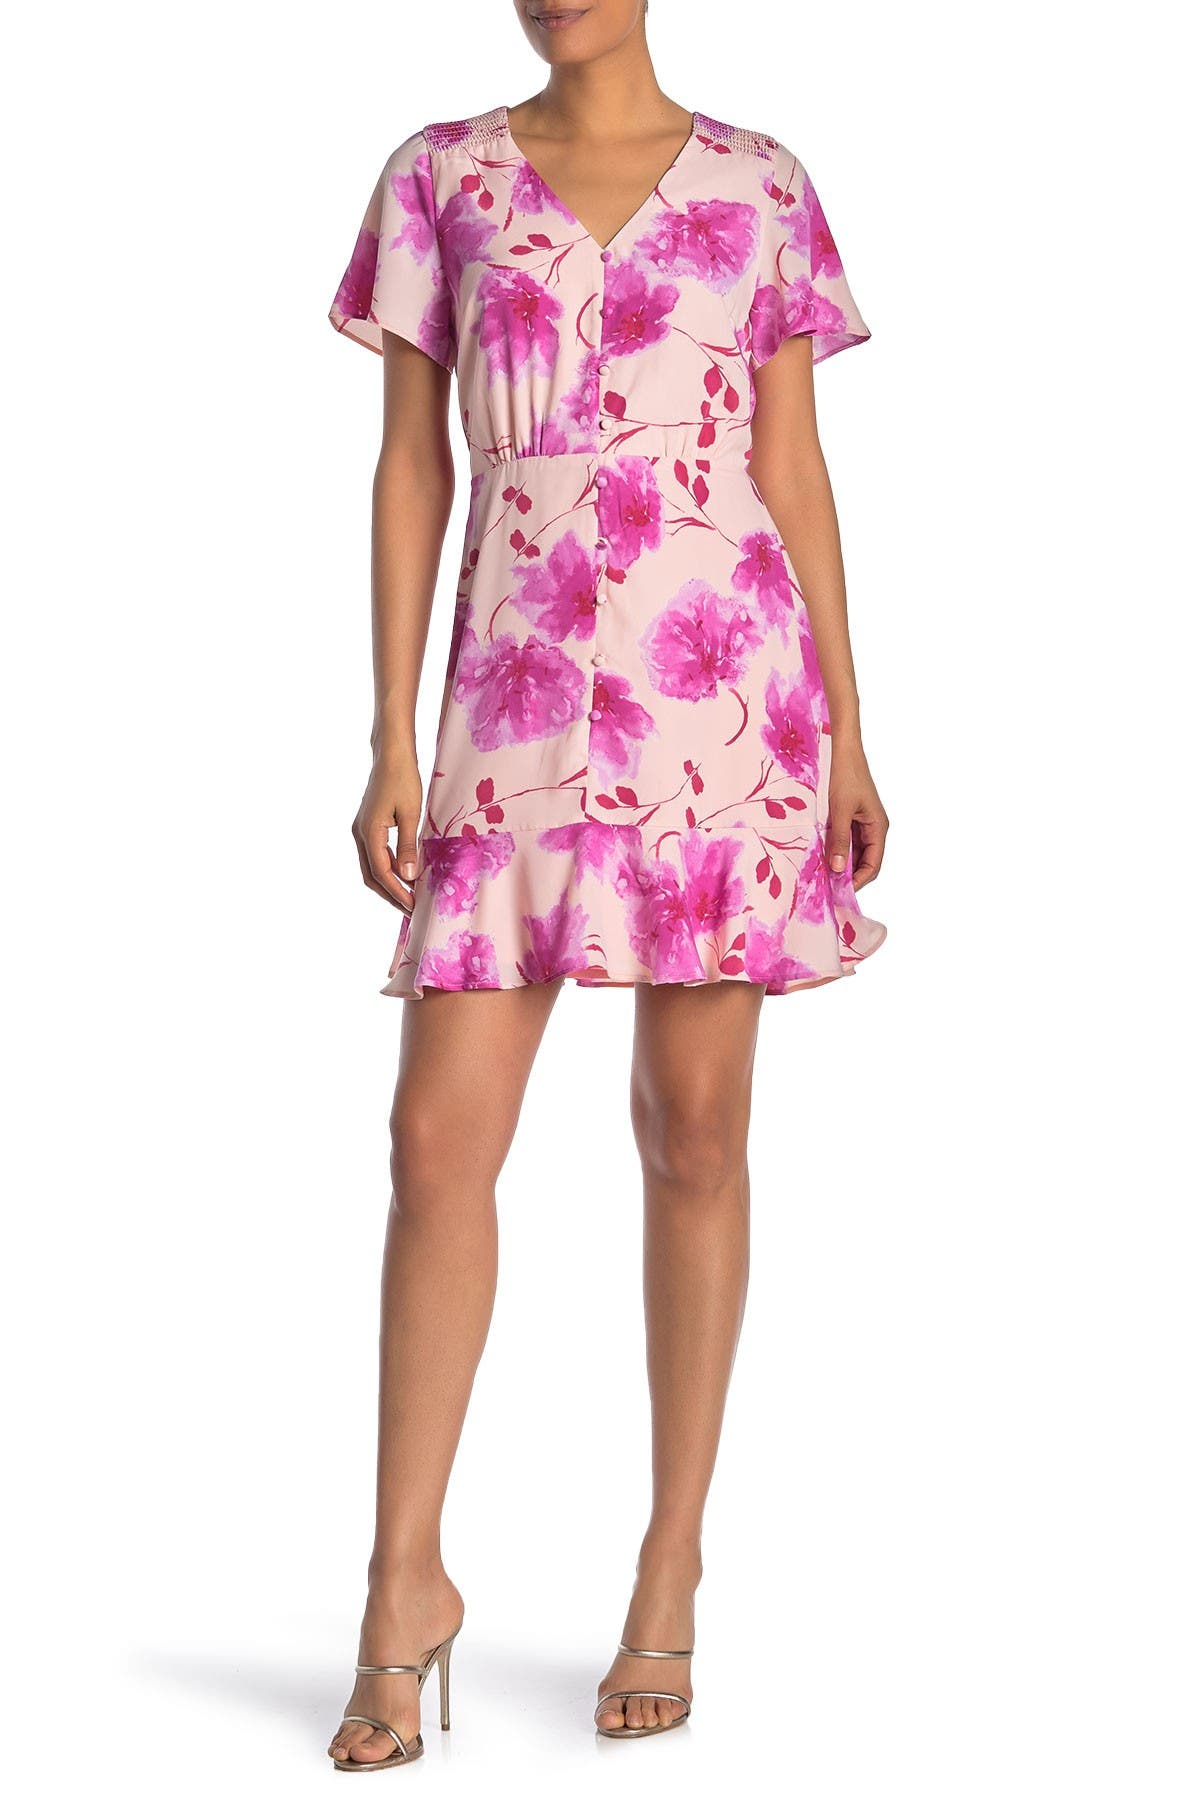 Image of Collective Concepts Short Sleeve Floral Dress